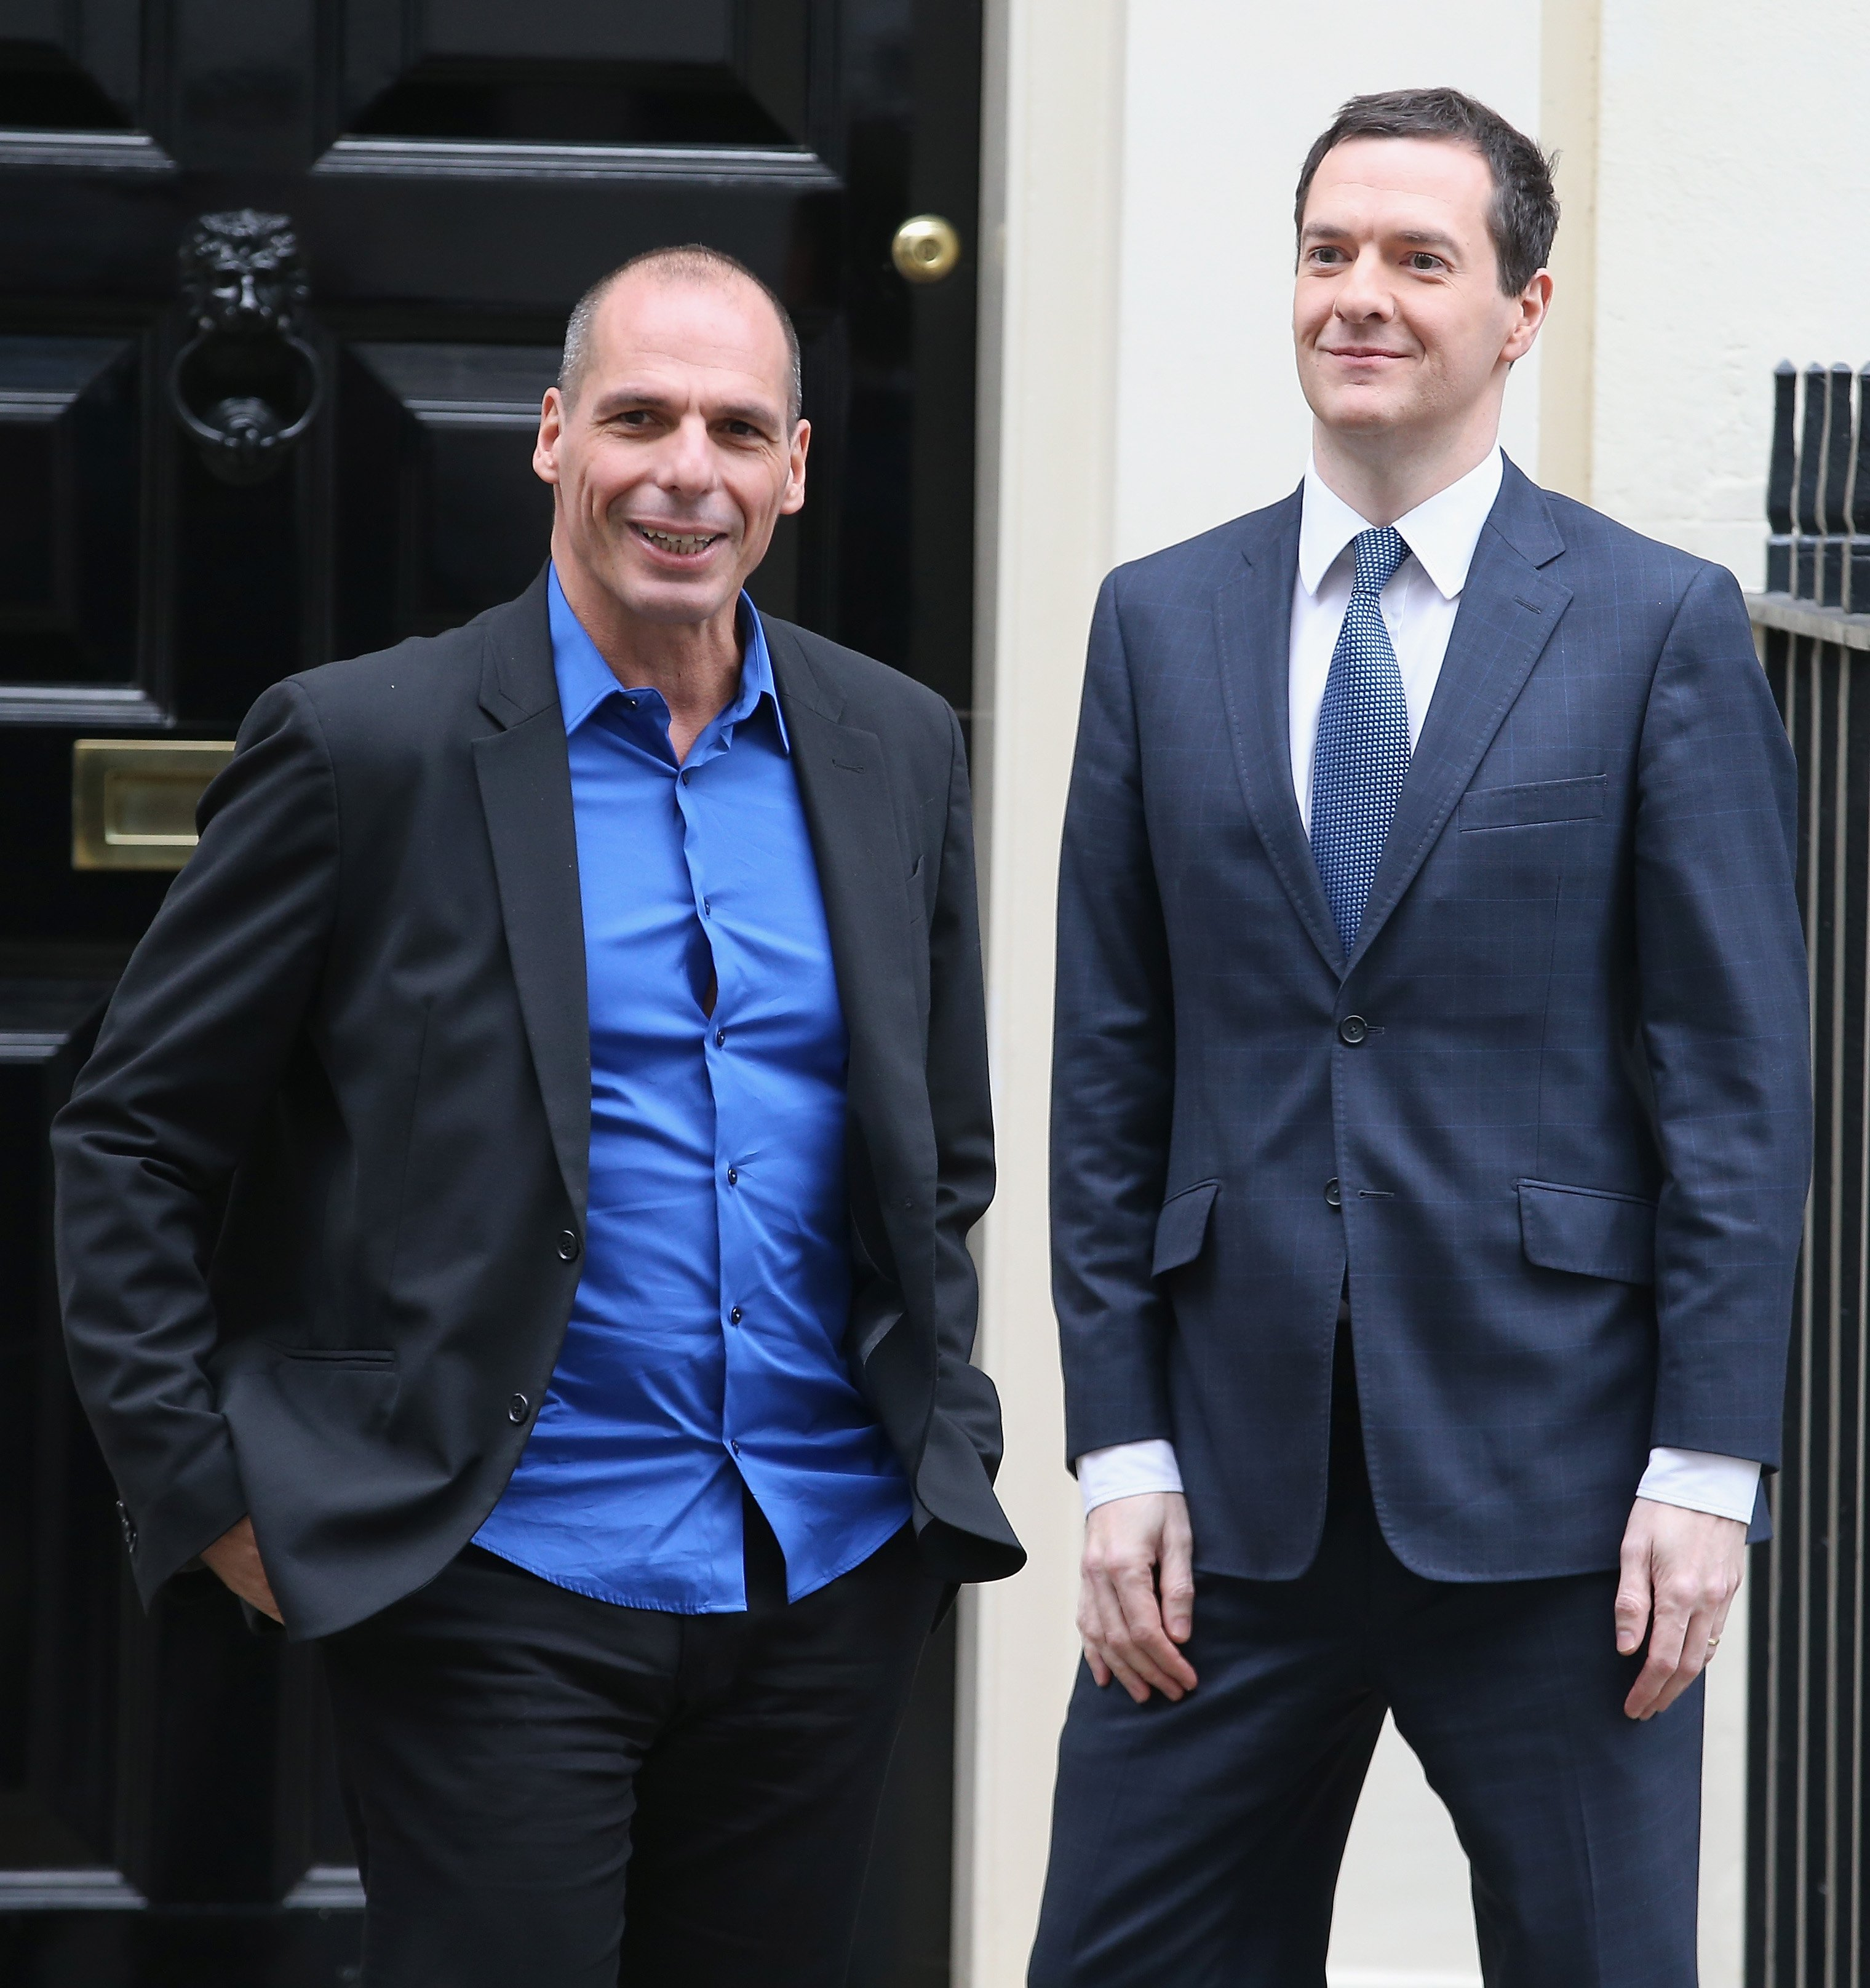 From left: Greece's finance minister Yanis Varoufakis leaves Number 11 Downing Street after meeting Chancellor of the Exchequer George Osborne on Feb. 2, 2015 in London.